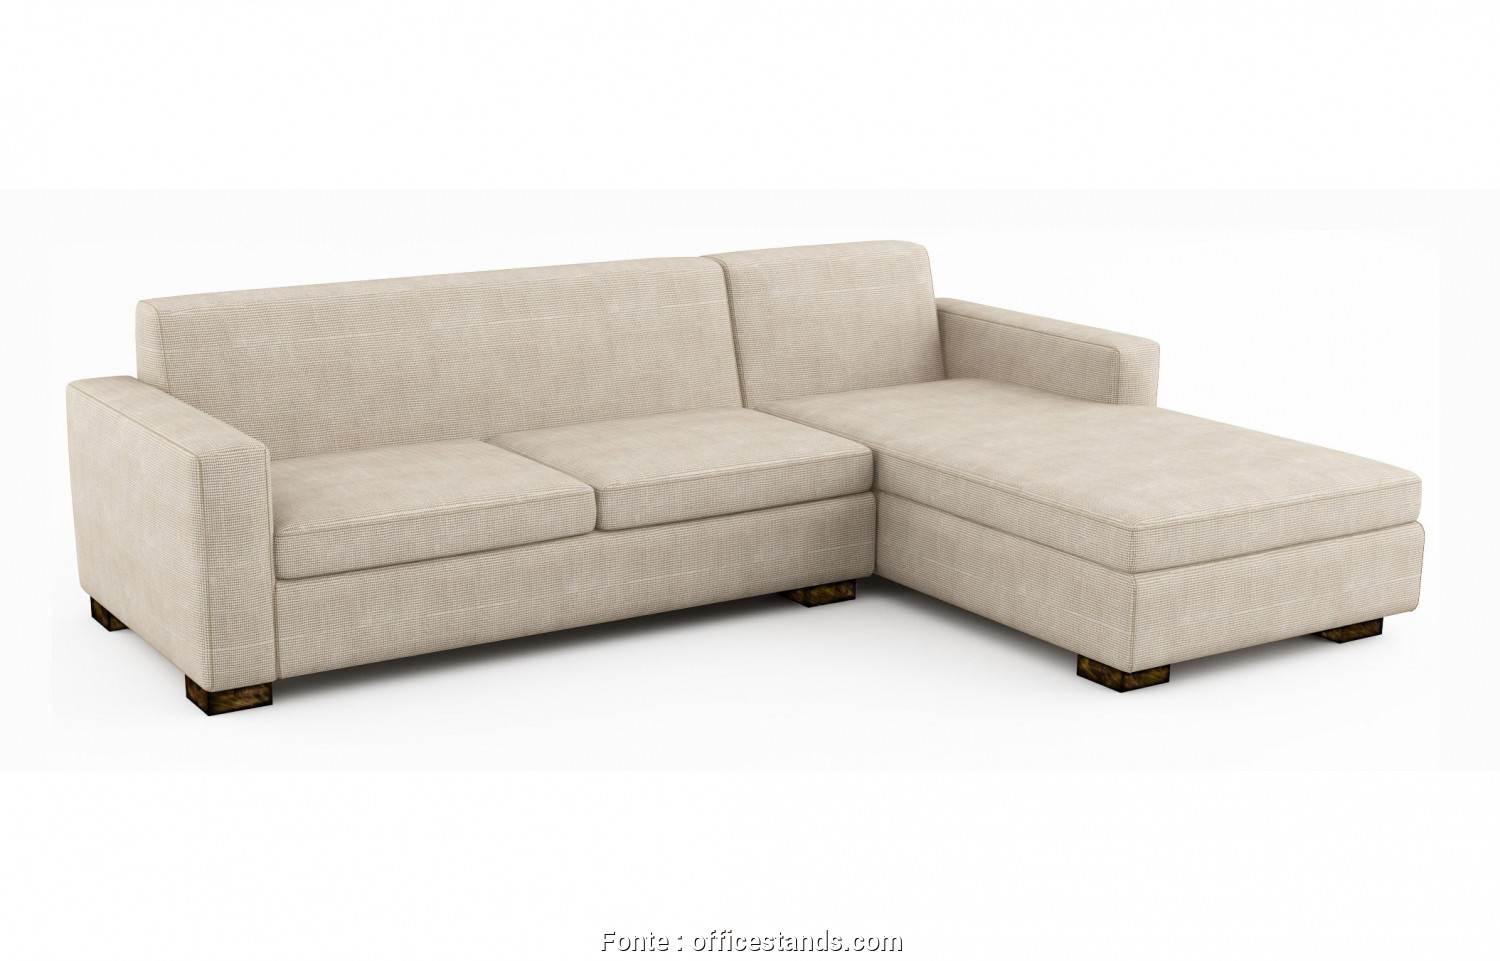 Backabro Ikea At, Bellissimo Ikea Vilasund, Backabro Review Return Of, Sofa Bed